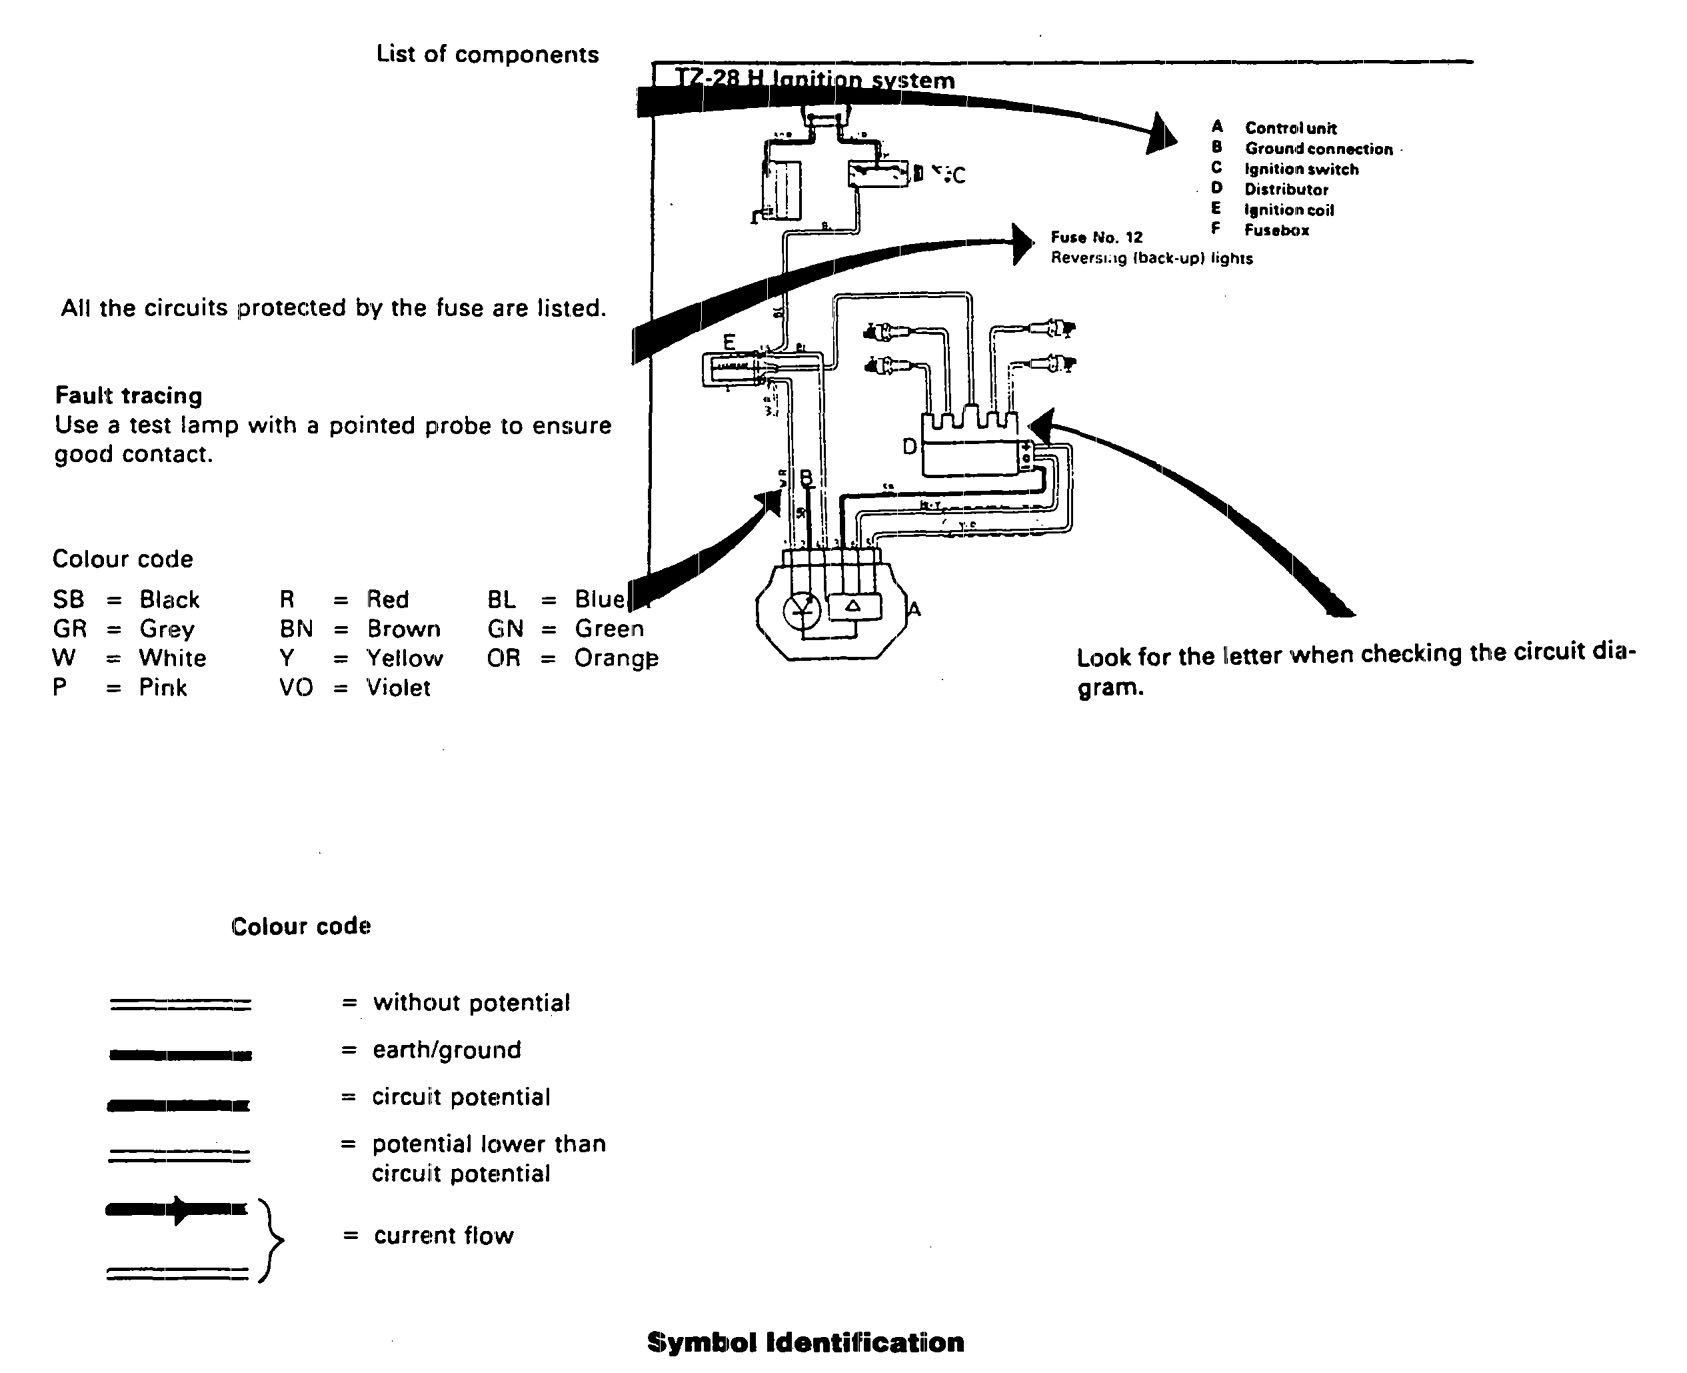 Wiring Diagram For 1990 Volvo 740 : Volvo wiring diagrams symbol id